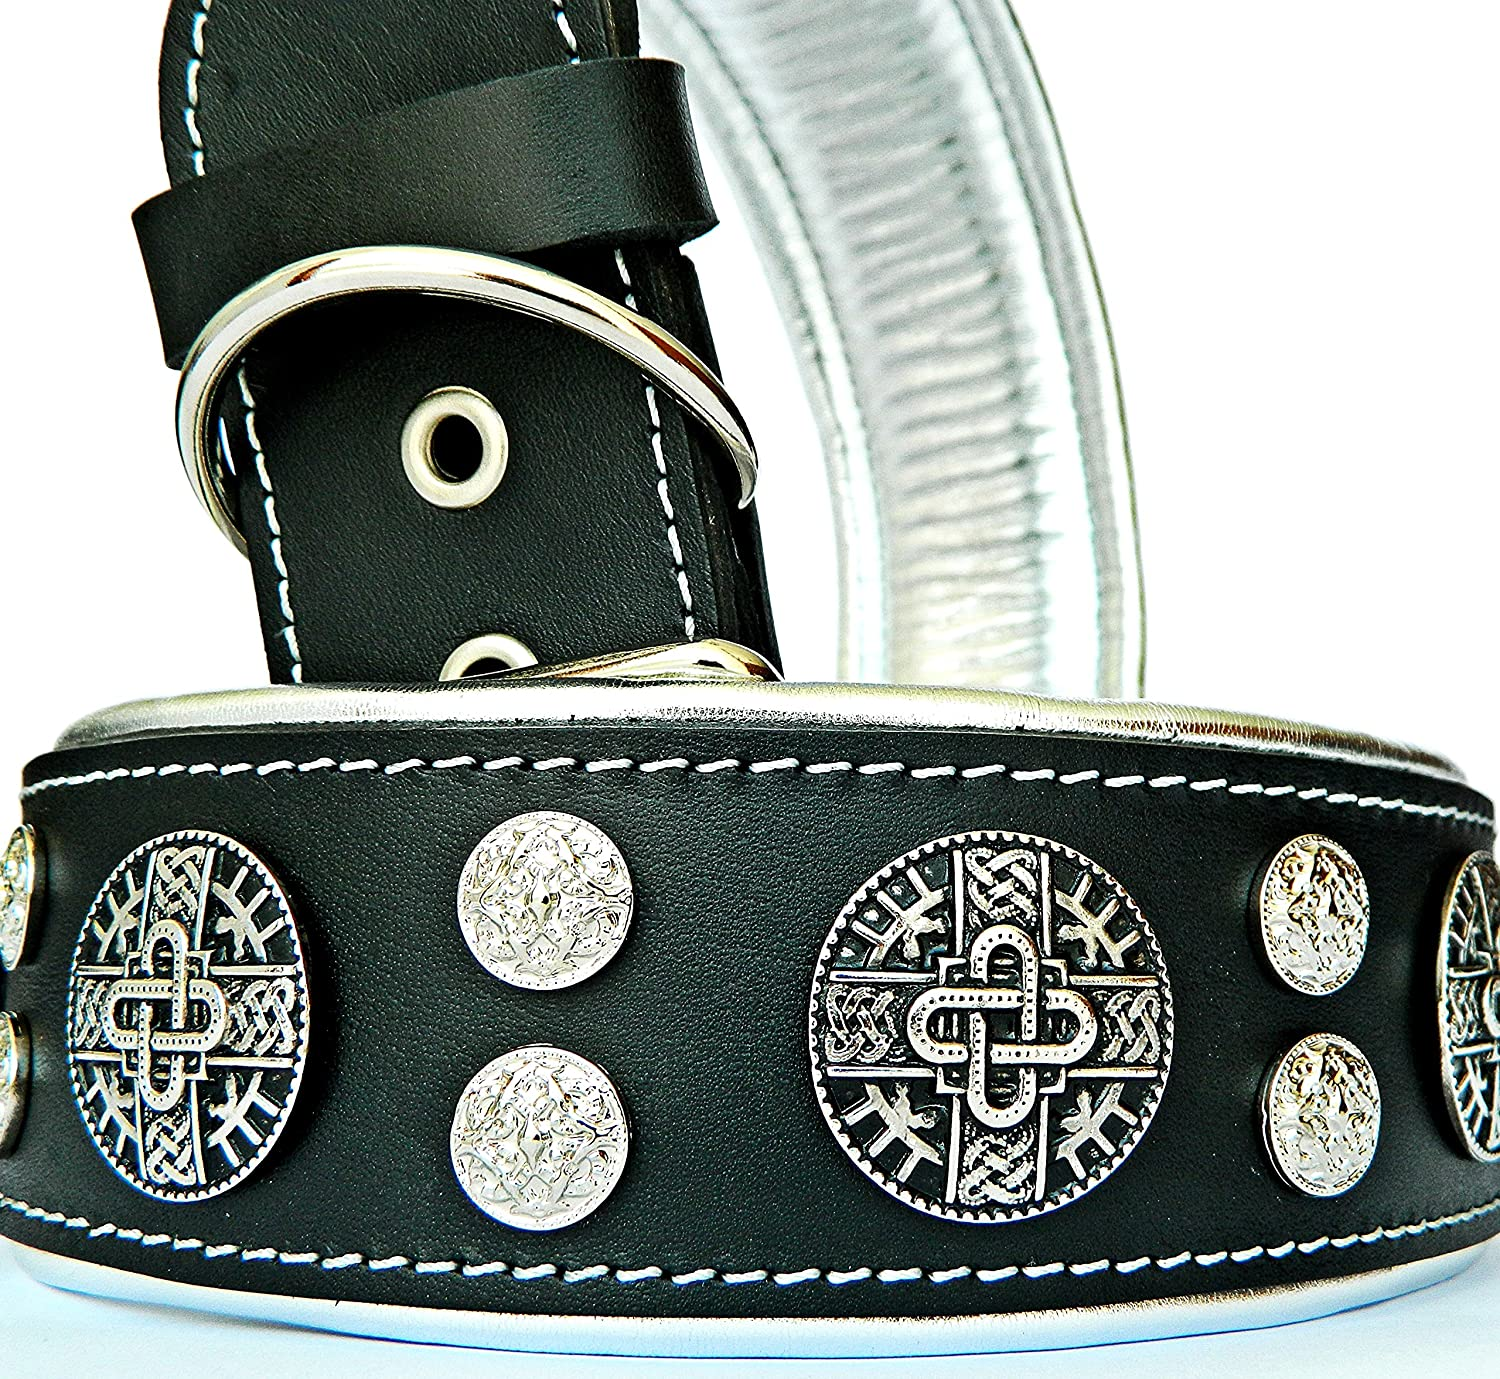 XL- fits a neck of 22.6- 26.6 inch Bestia Hektor  Genuine Leather Dog Collar, Large Breeds, Cane Corso, redtweiler, Boxer, Bullmastiff, Dogo, 100% Leather, Studded, L- XXL Size, 2.5 Inch Wide. Padded. Europe`s Fnest Dog Gear